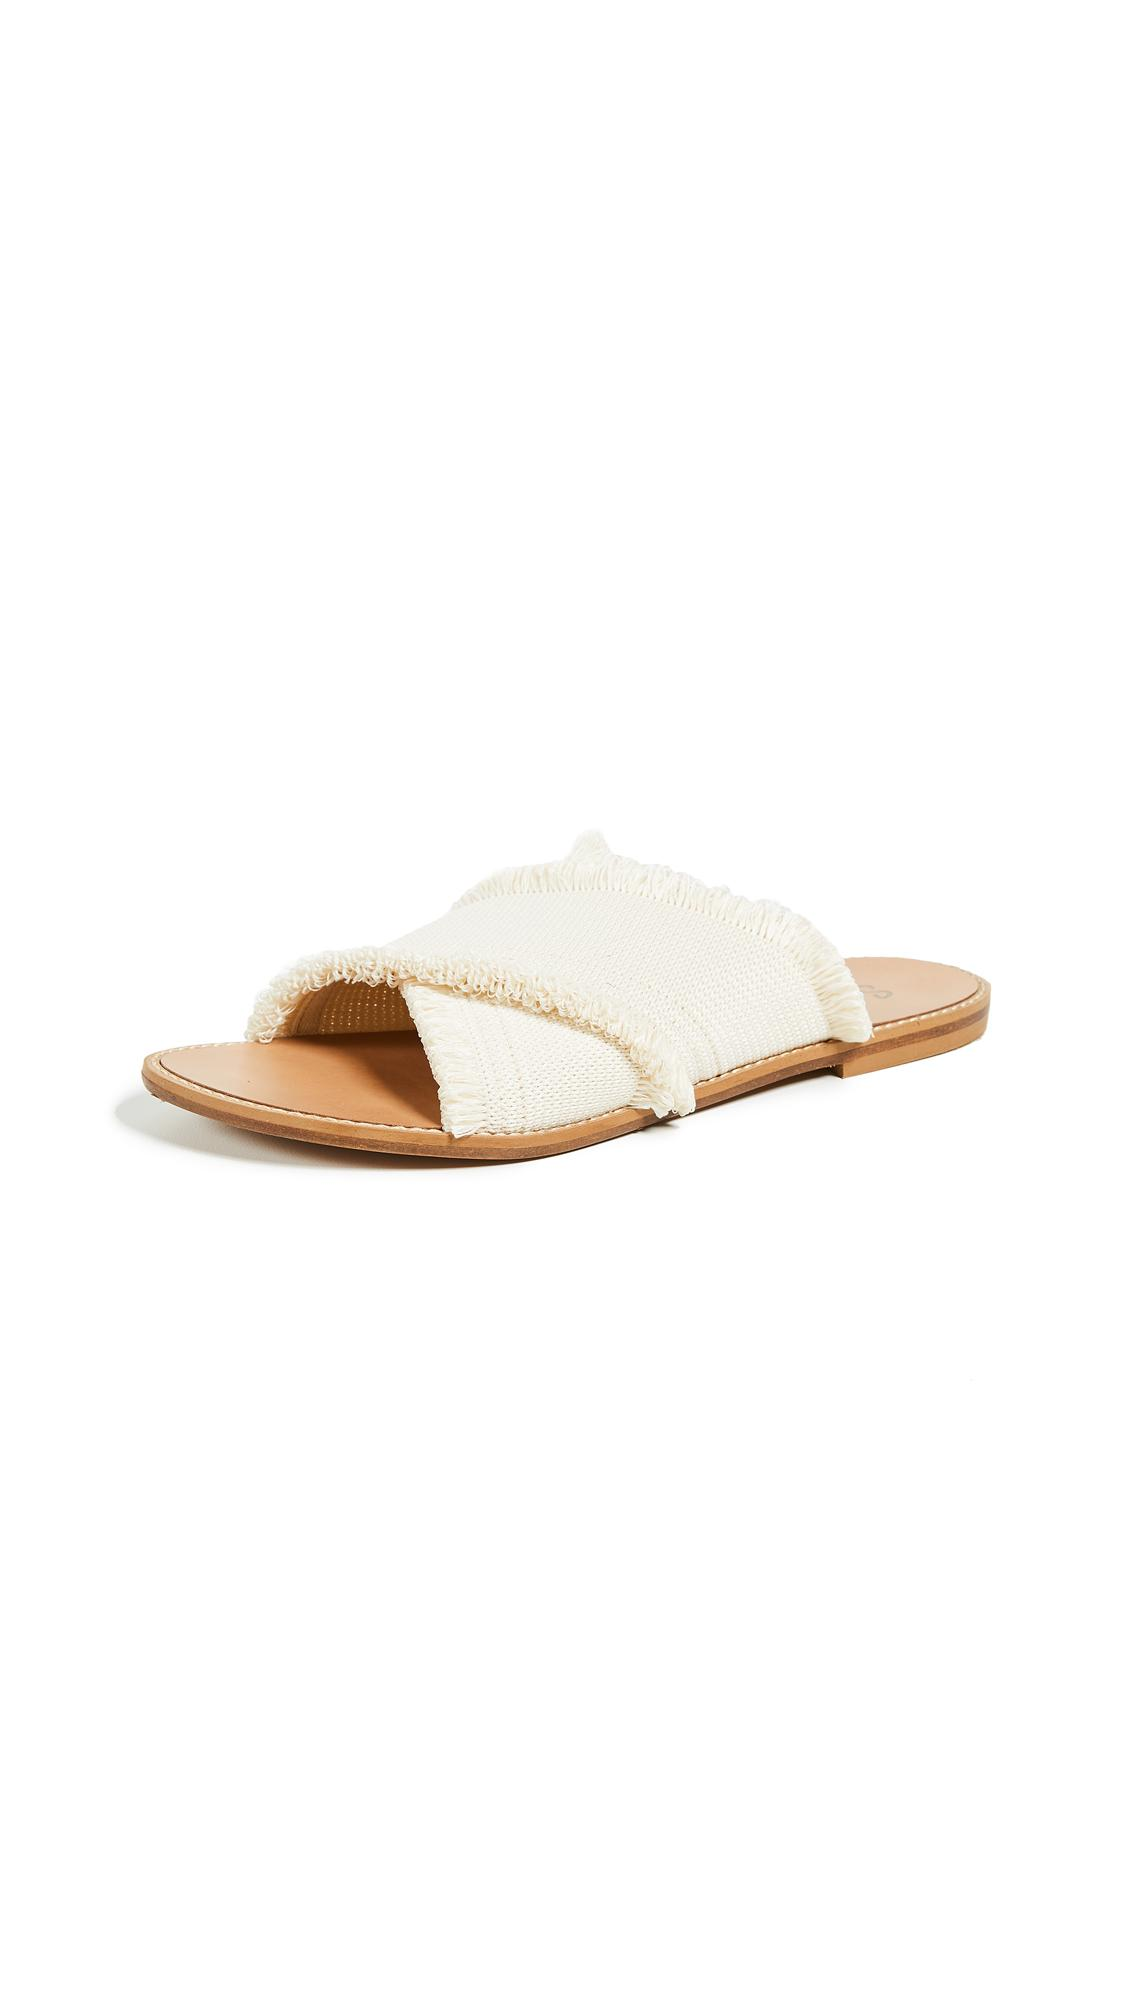 Splendid Women's Fulton Canvas Slide Sandals In Ivory